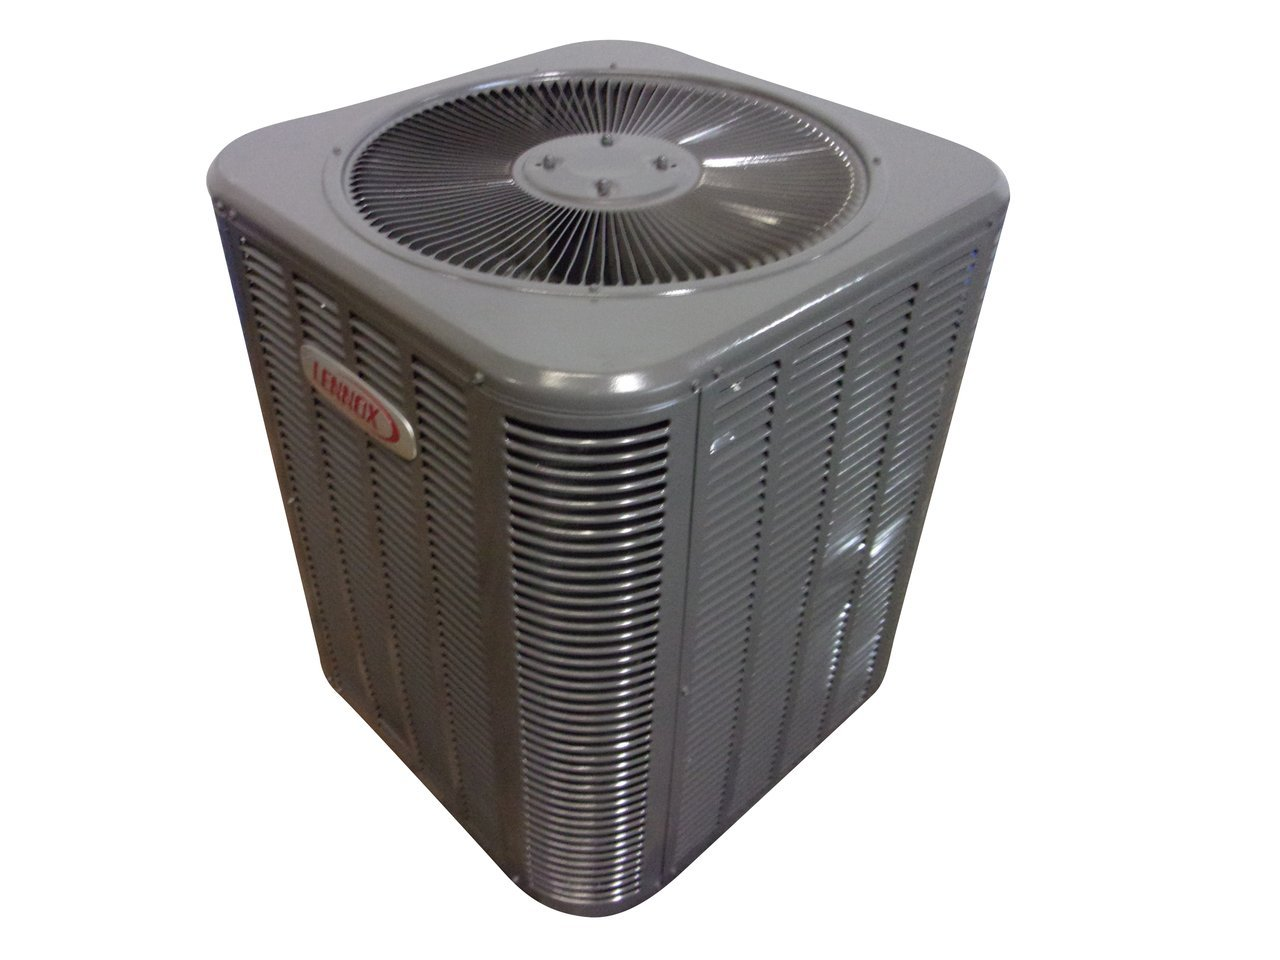 LENNOX Used Central Air Conditioner Condenser 13ACX-030-230-13 ACC-10212